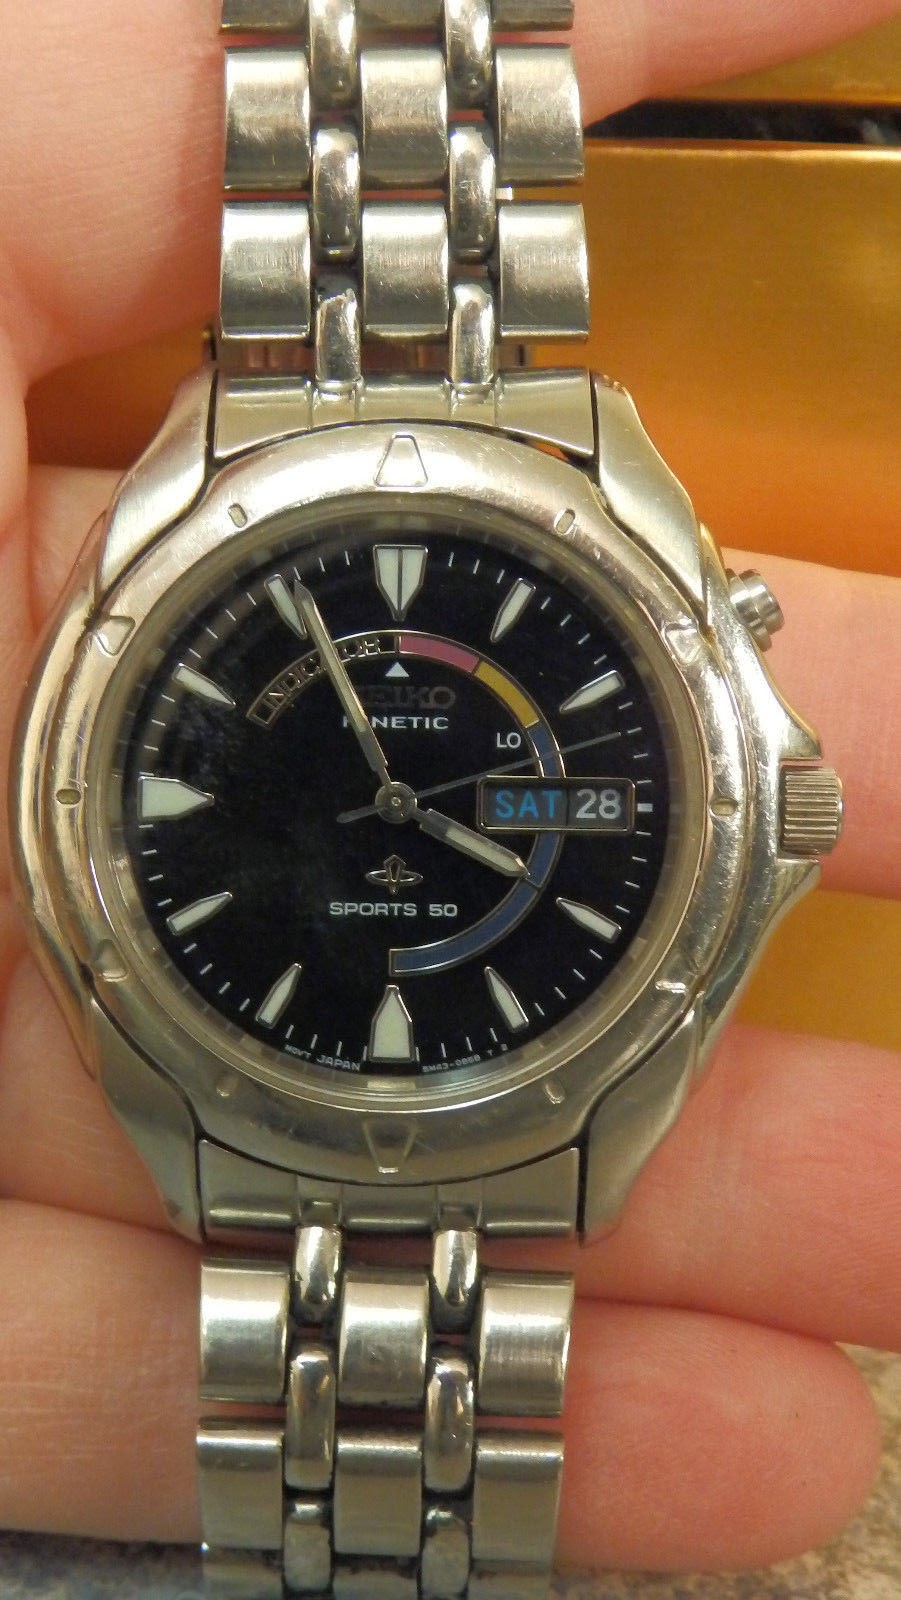 http://www.ebay.com/itm/mens-seiko-watch-kinetic-sports-50-Silver-tone-band-with-black-face-/321690501145?pt=LH_DefaultDomain_0&hash=item4ae63f8019